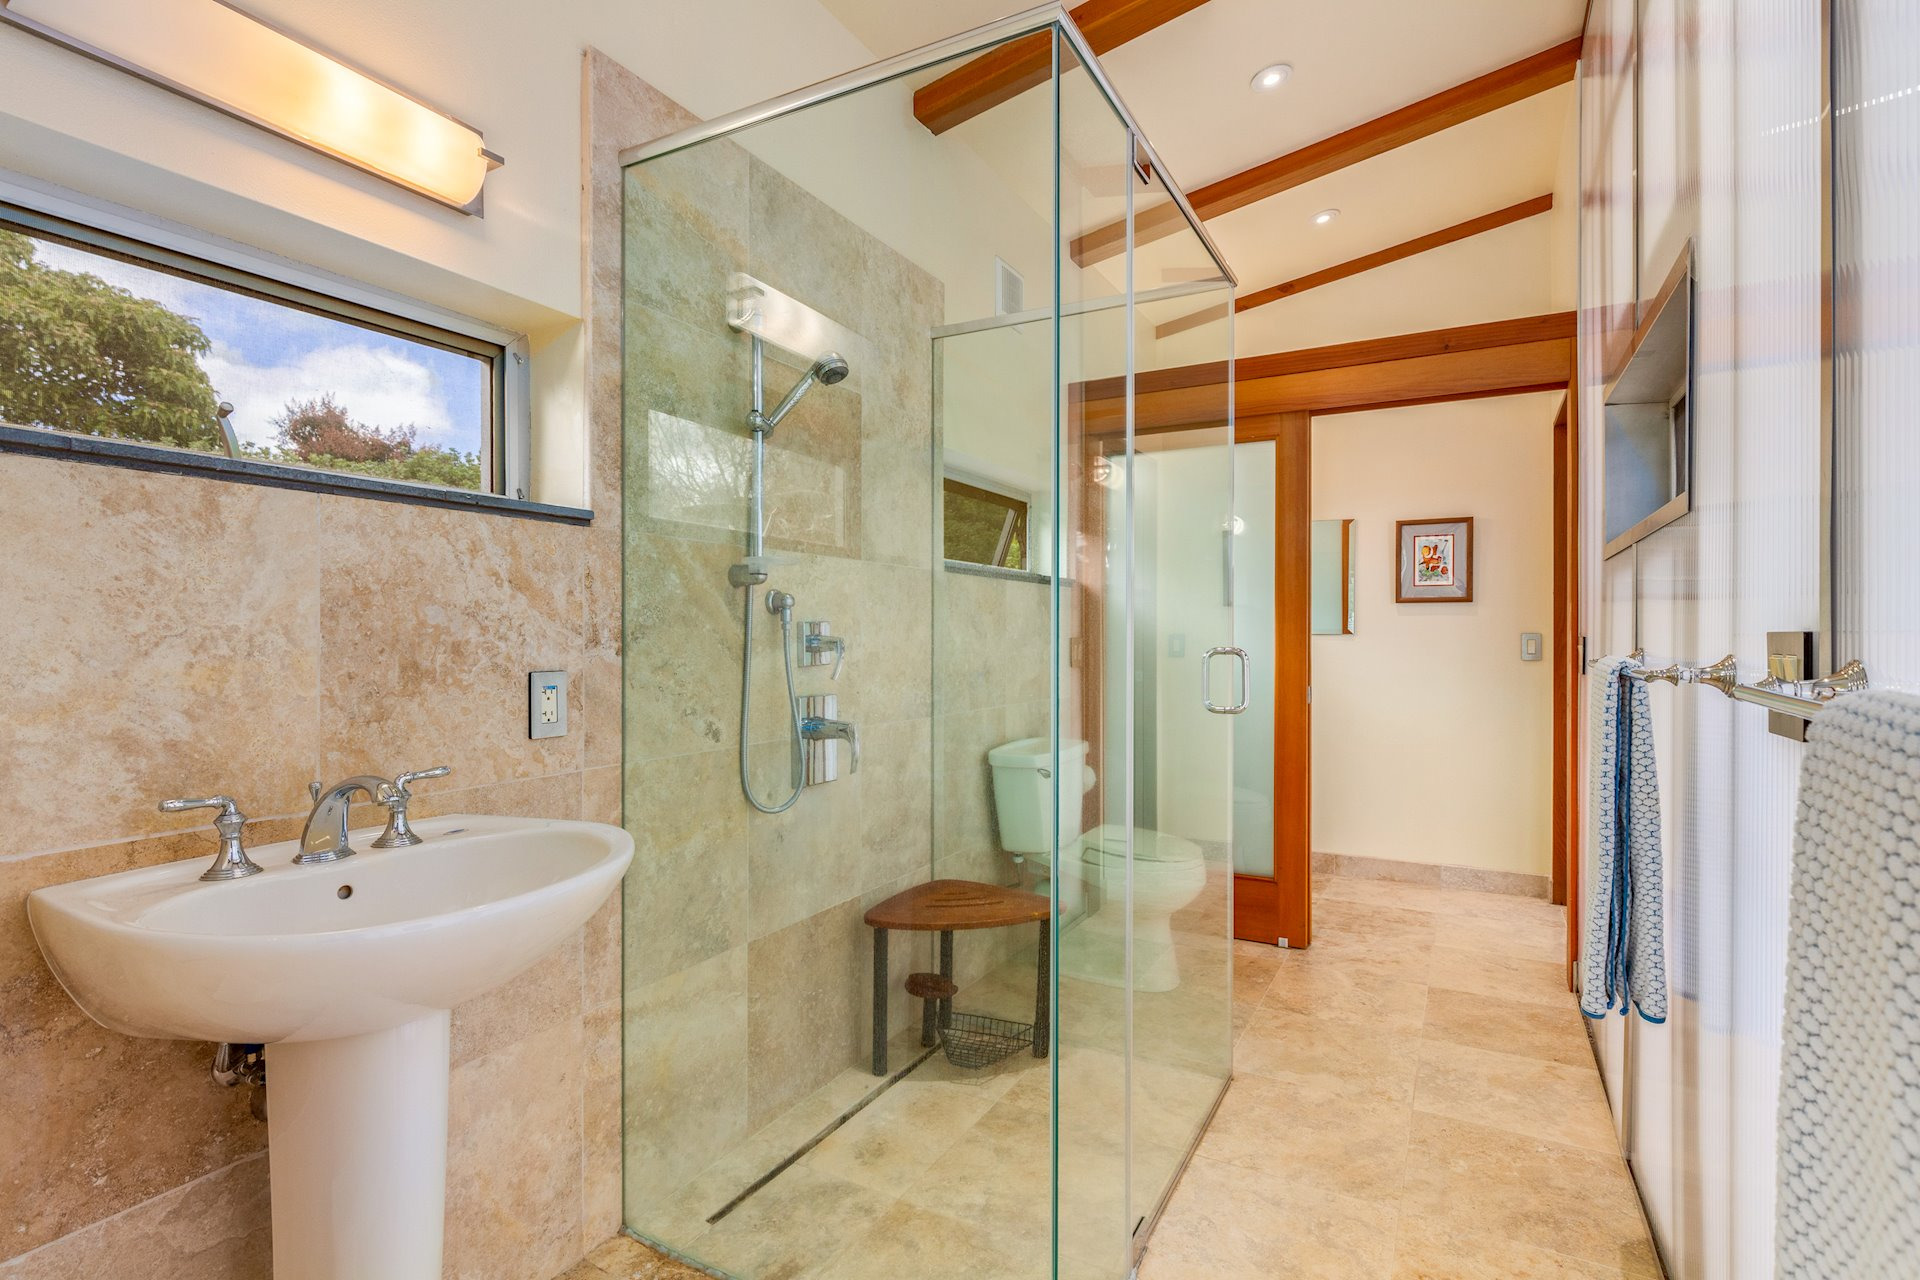 Guest bathroom separates the two rooms